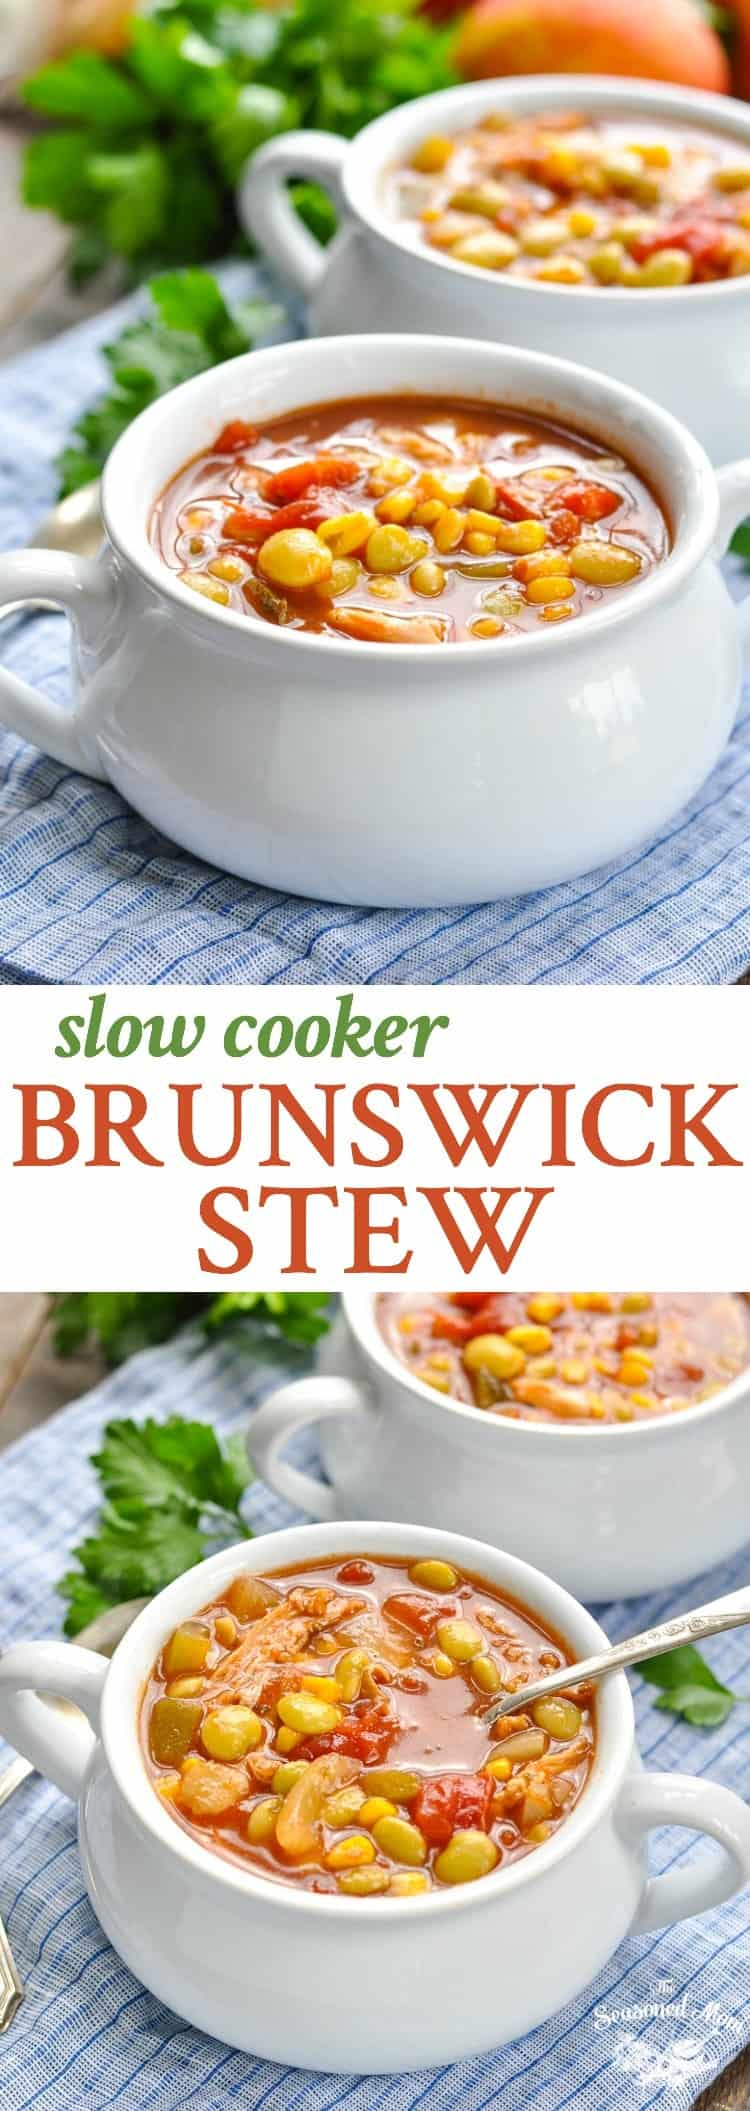 Slow Cooker Brunswick Stew is a healthy dinner recipe that's perfect for busy nights! Slow Cooker Chicken Breast Recipes | Pork Tenderloin Recipes | Easy Dinner Ideas